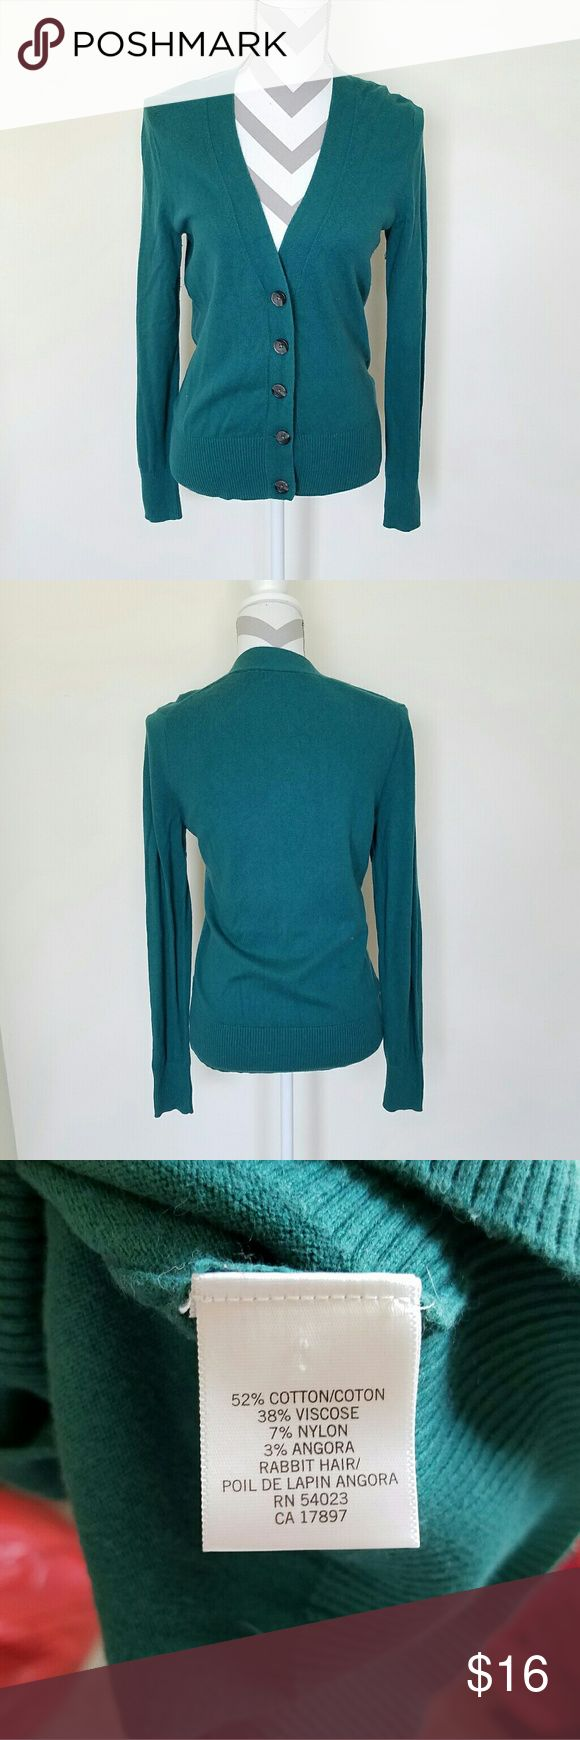 Banana Republic Teal Cardigan! Teal cardigan with buttons down the front. Soft stretchy material. Length is about 25 inches and armpit to armpit is about 19 inches. Great condition! Banana Republic Sweaters Cardigans